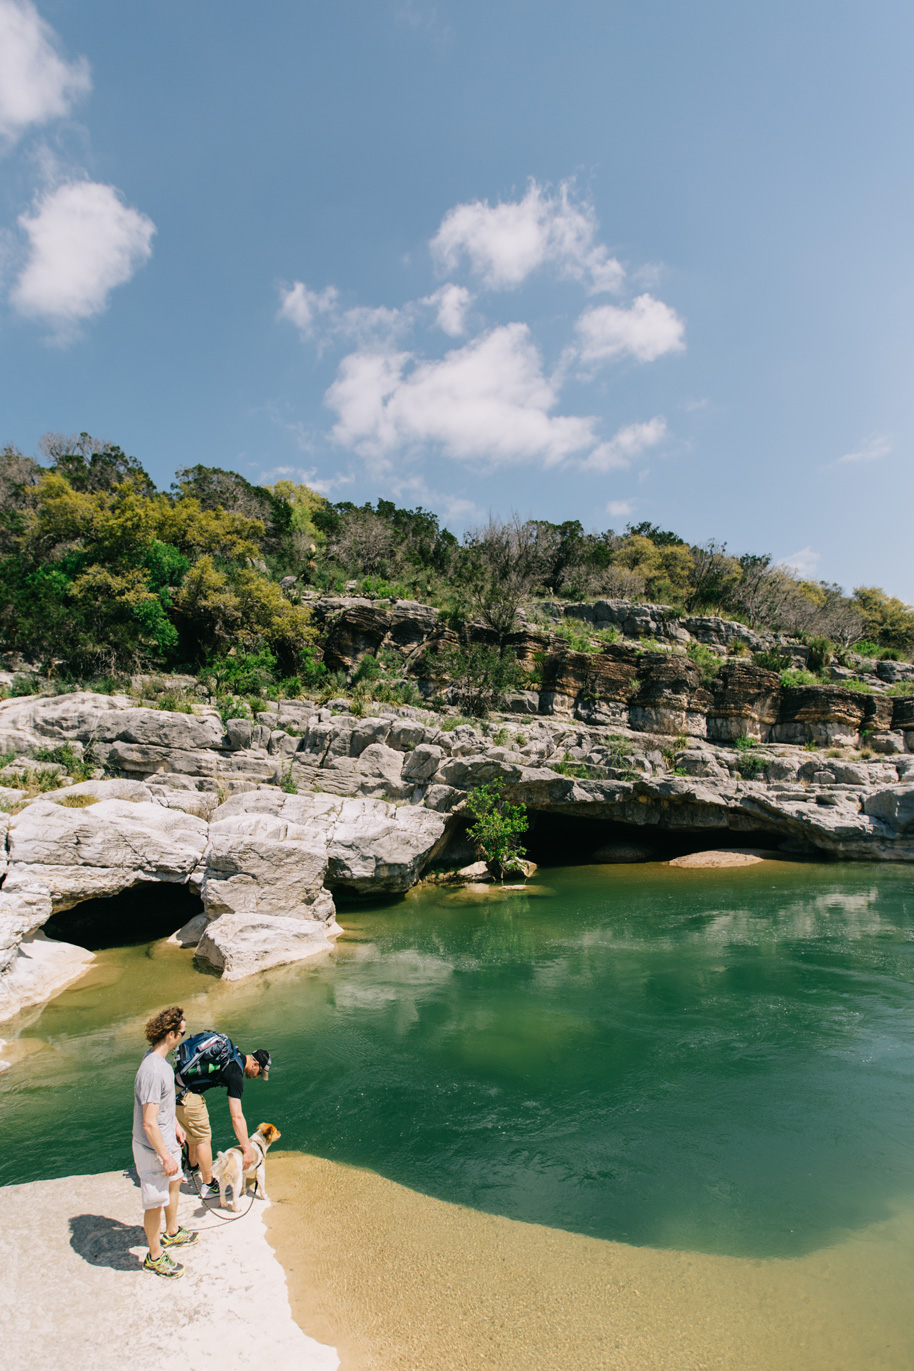 CindyGiovagnoli_Texas_Pedernales_State_Park_Guadalupe_River_HangarBar_HillCountry_outdoors_hike_swim-012.jpg